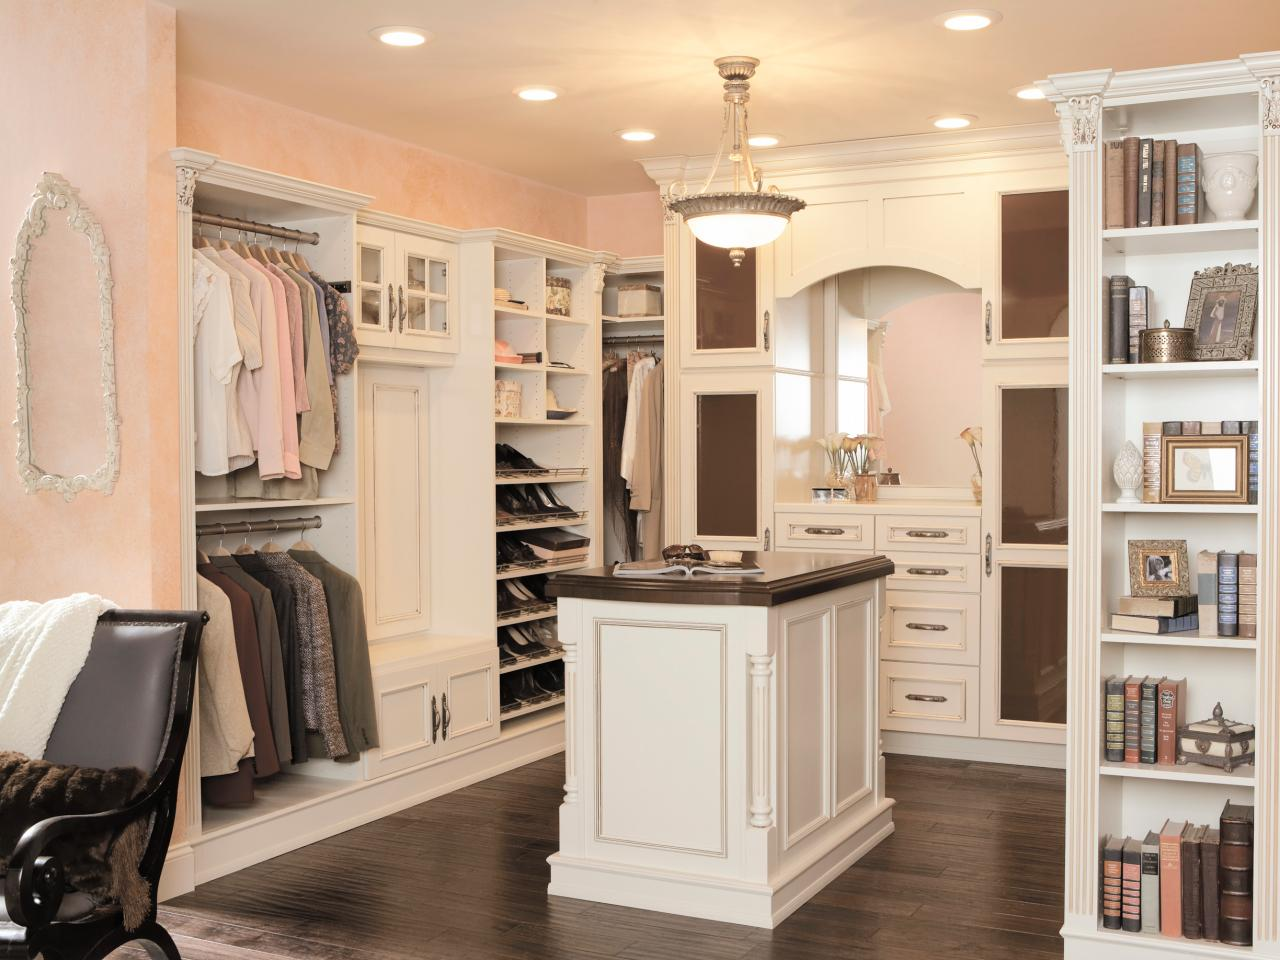 Bedroom Closet Ideas and Options | HGTV